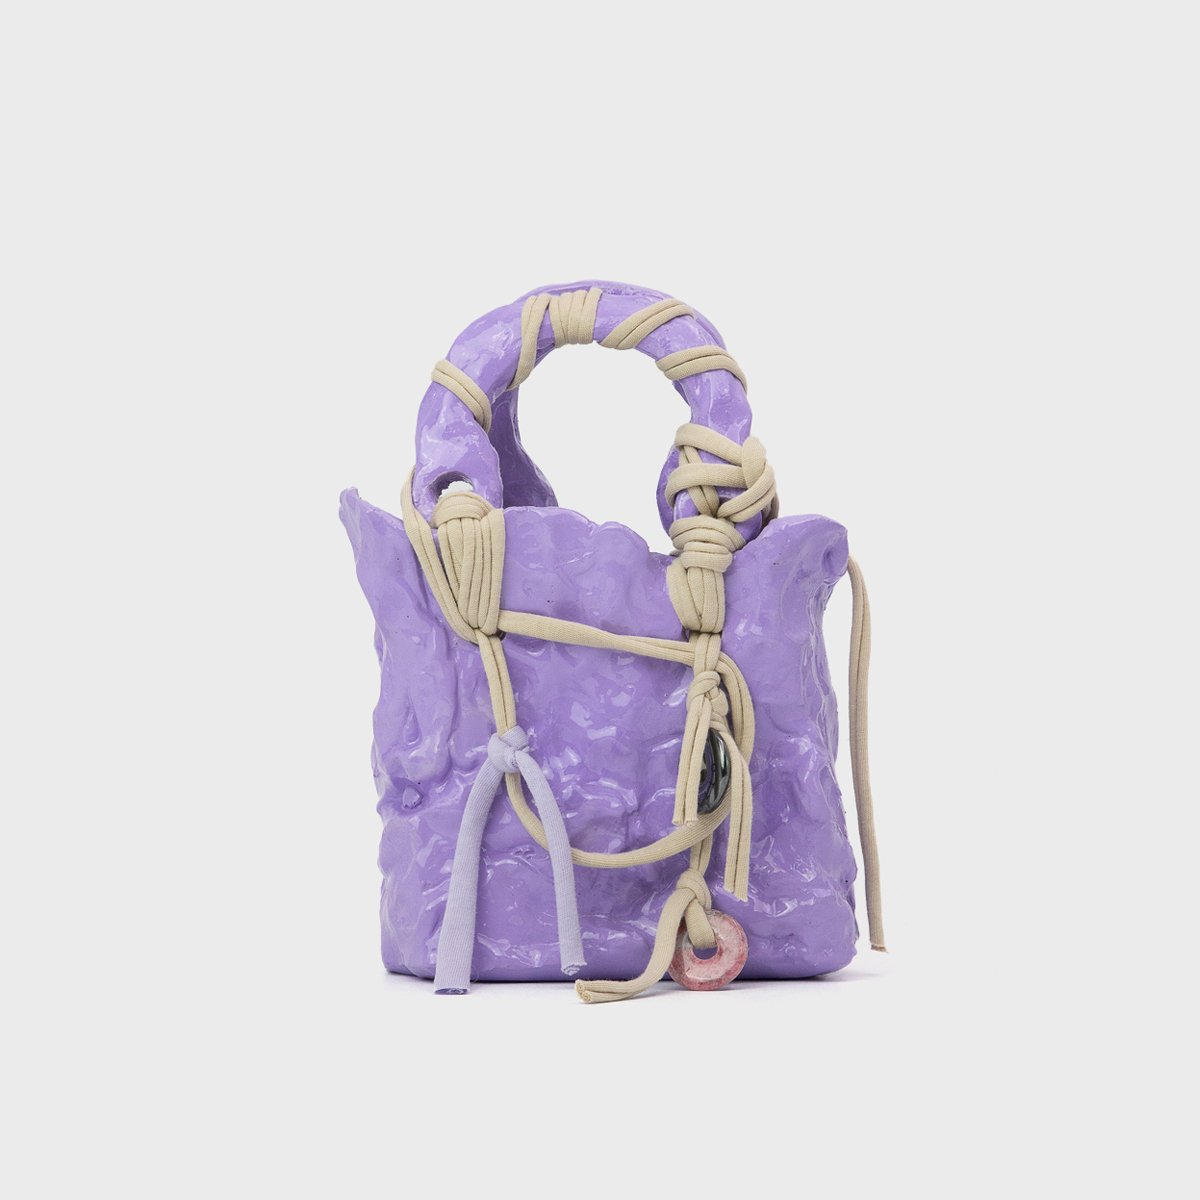 Ottolinger Handcrafted Purple Otto Bag